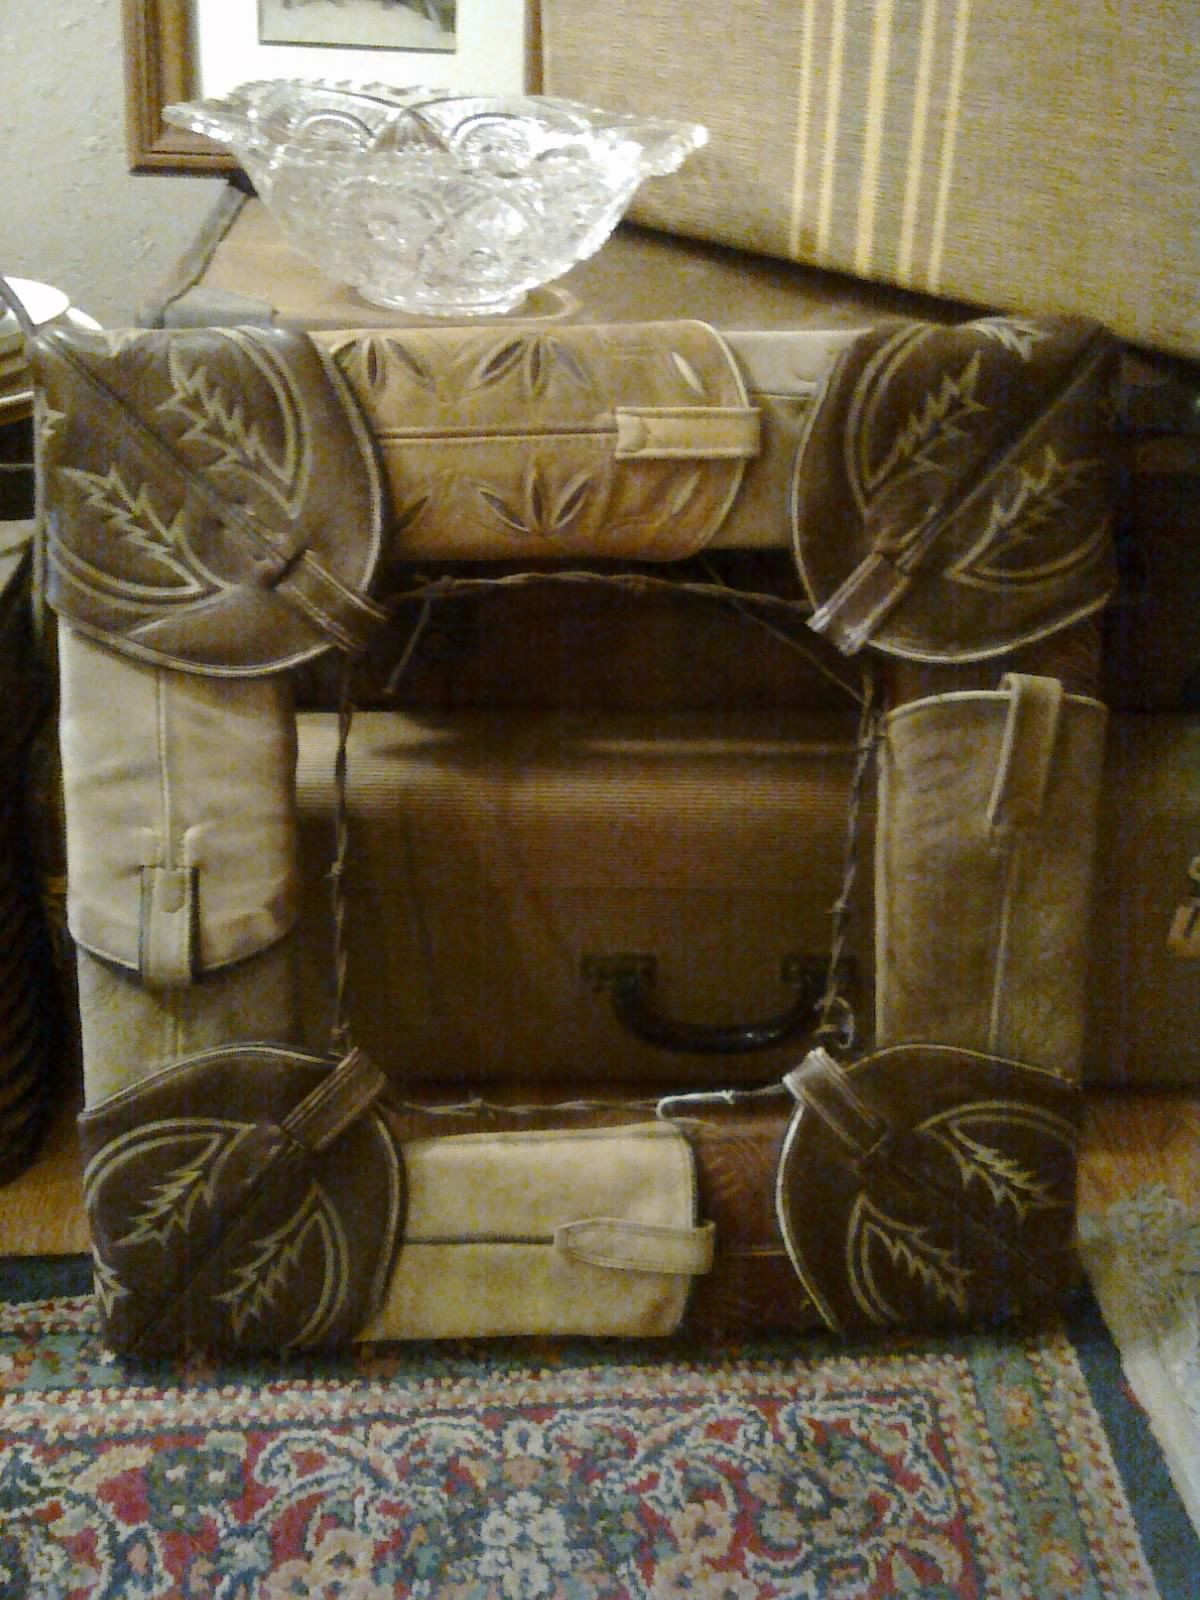 Recycled Cowboy Boot Top Picture Frame Mirror Such A